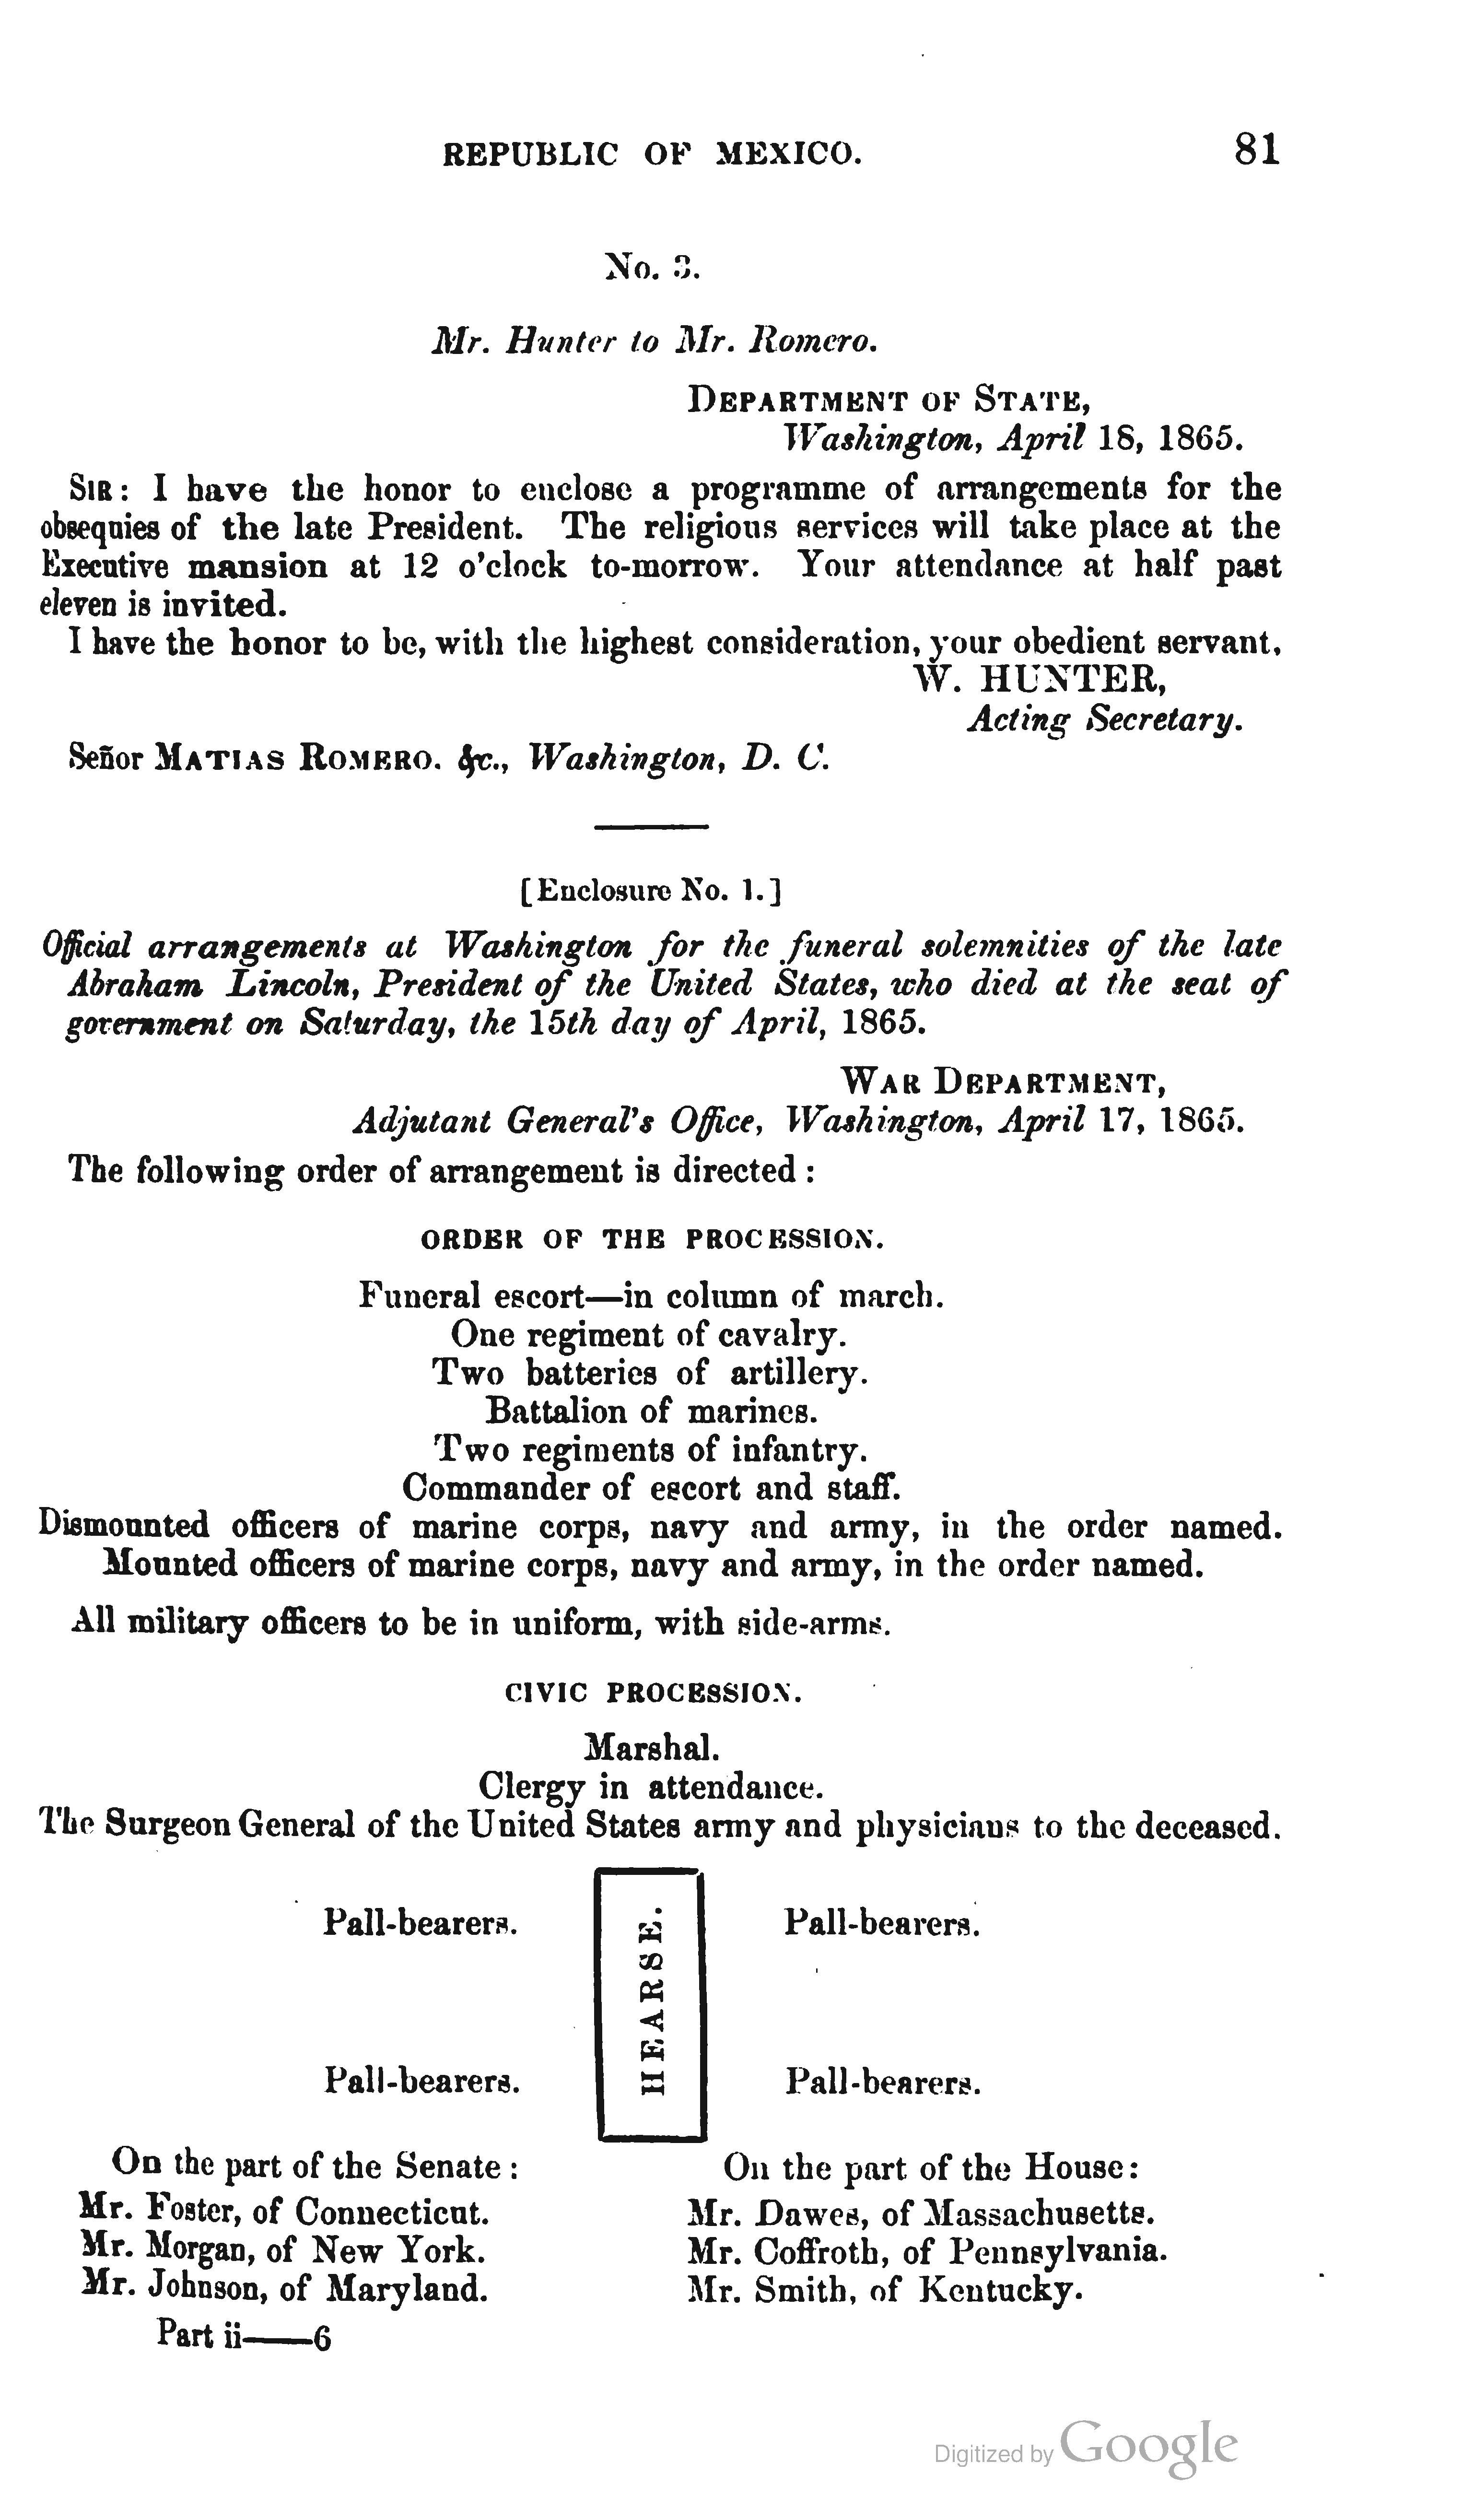 President abraham lincolns washington dc funeral directions and president abraham lincolns washington dc funeral directions and notes this is a letter and invitation to matias romero the minister of the mexican altavistaventures Choice Image